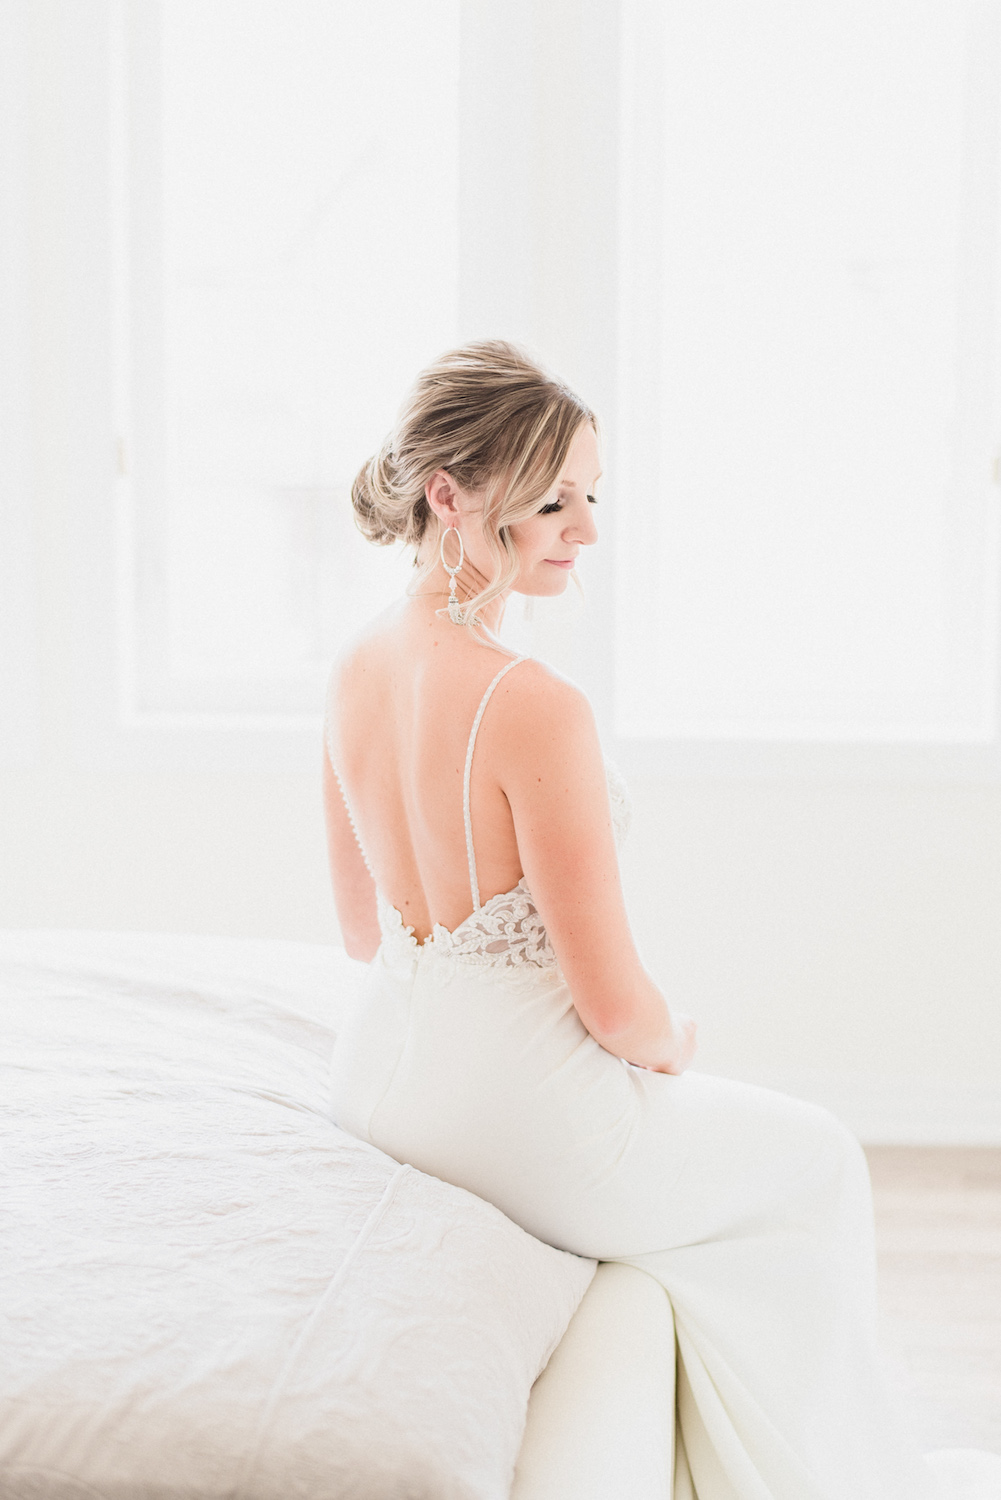 Jenn-Kavanagh_Photography-Bright-Bridal-Portraits